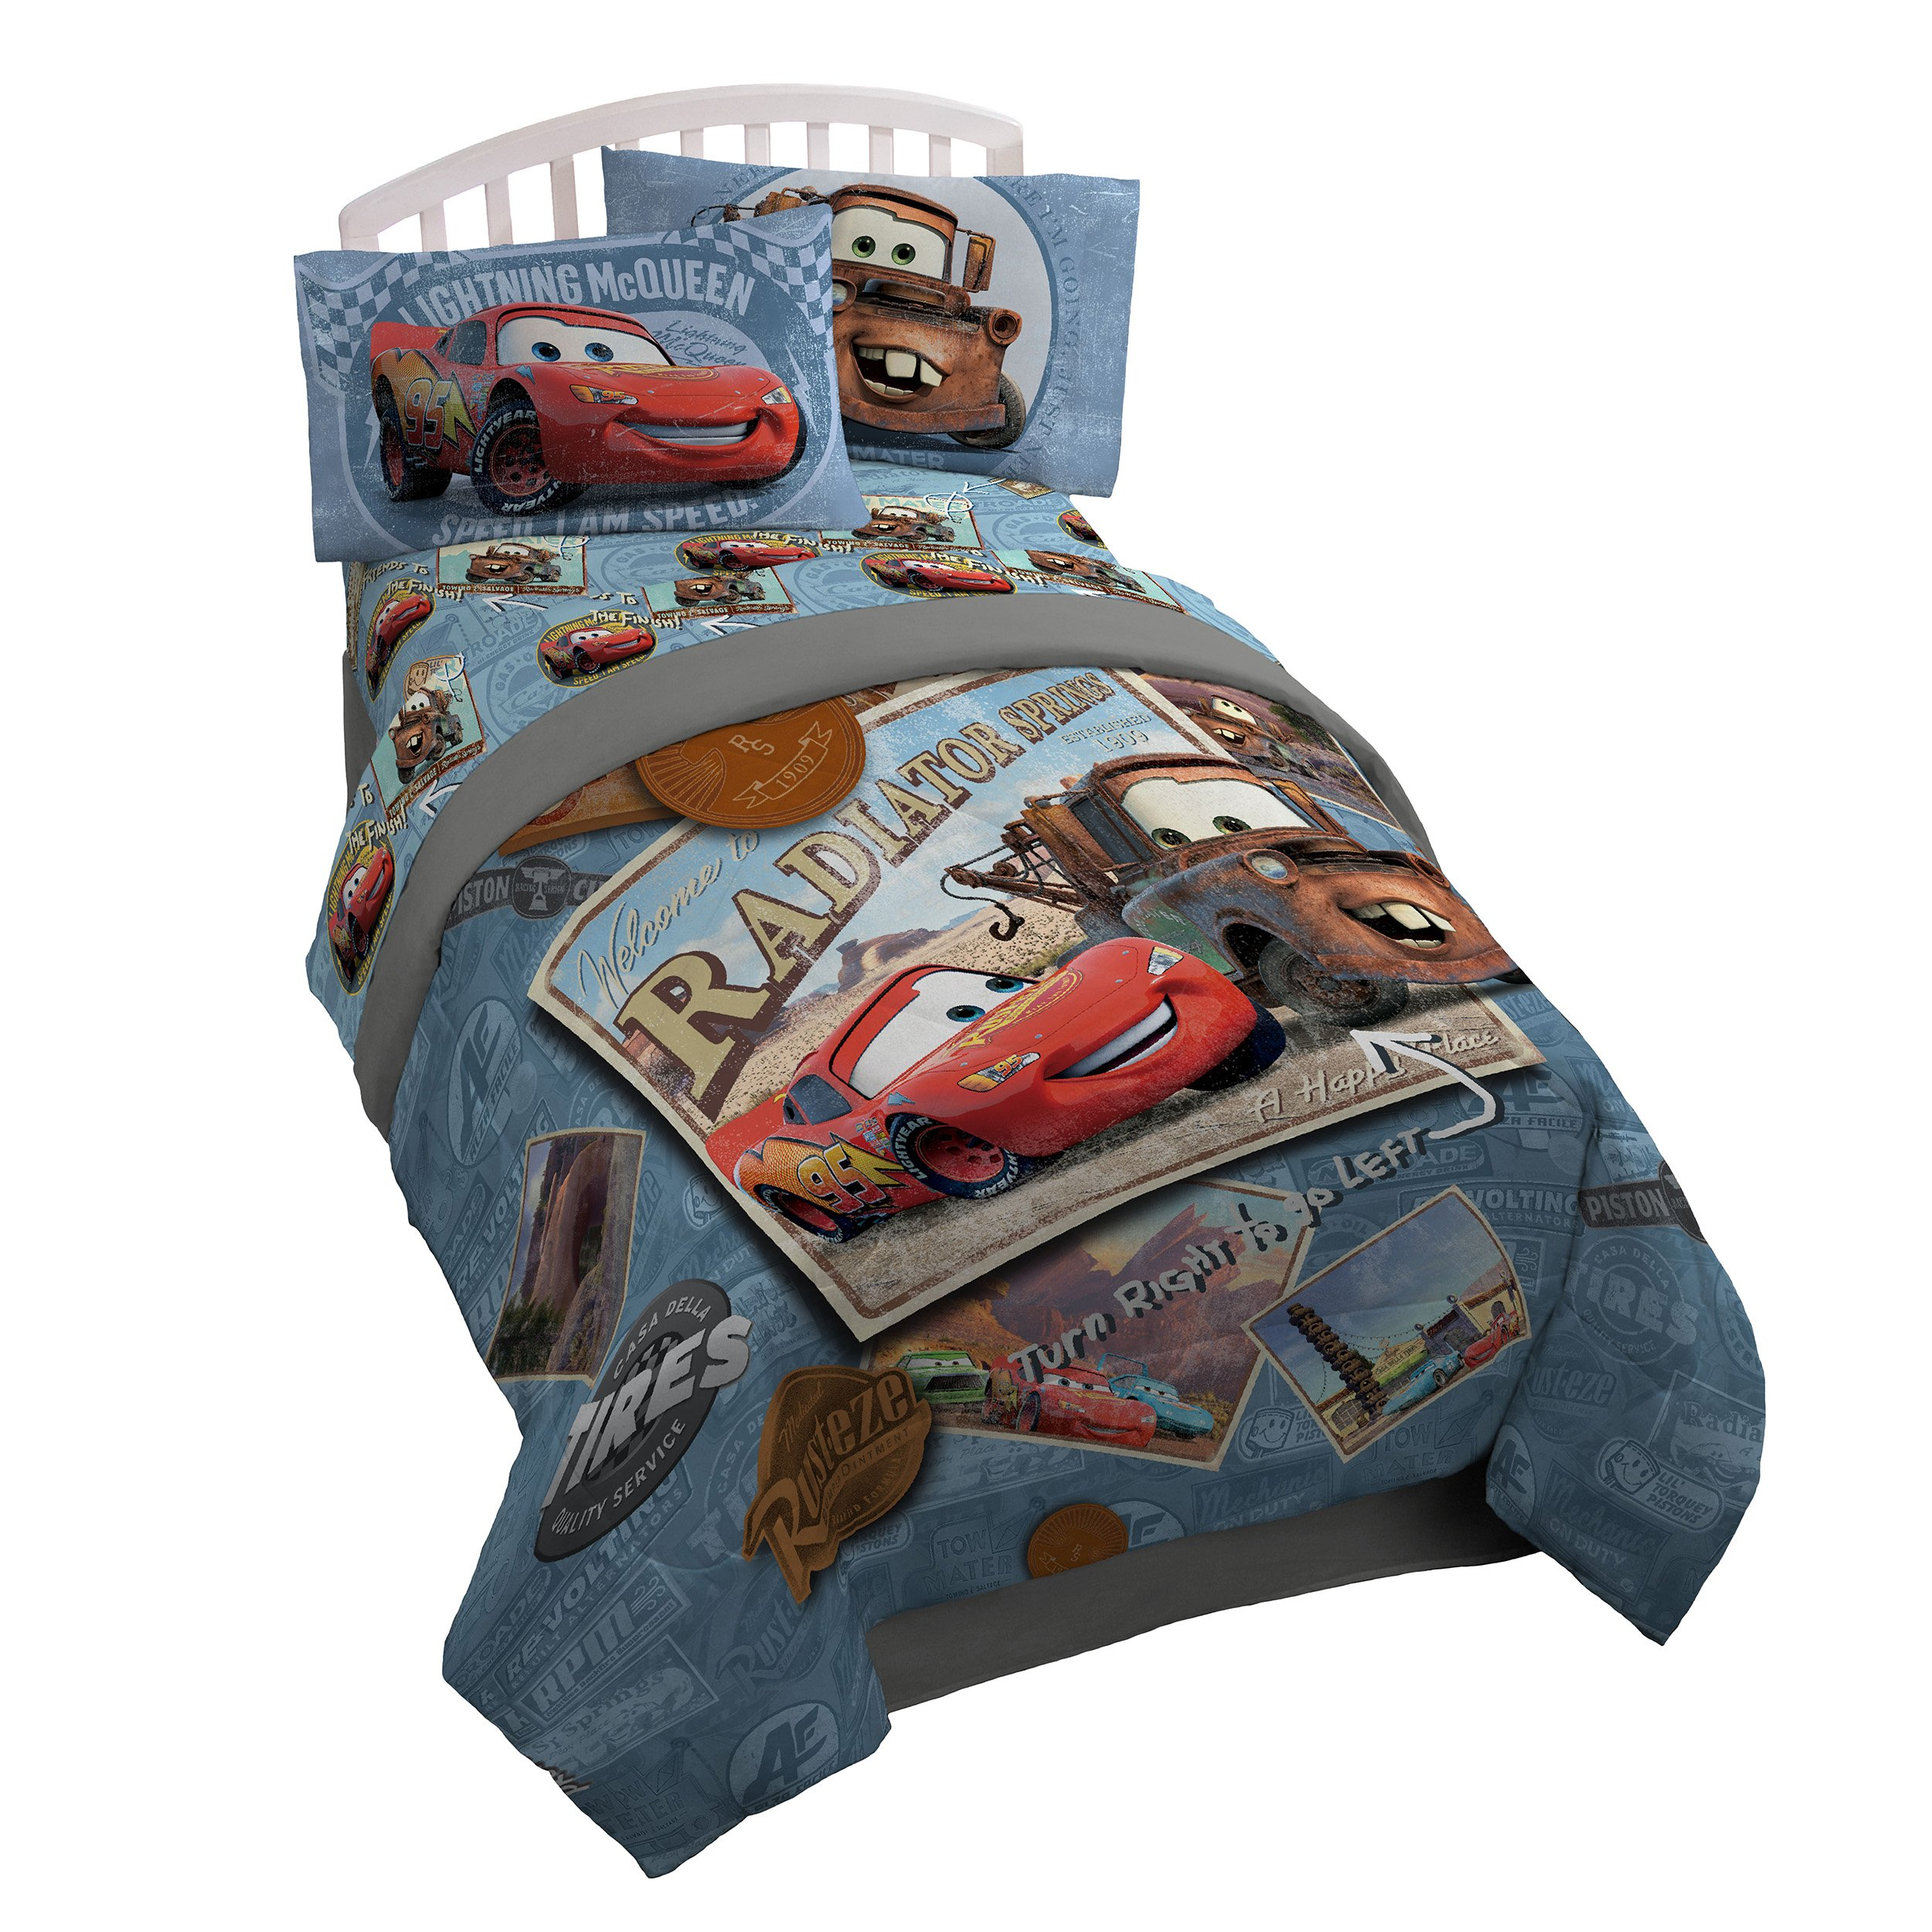 Disney Pixar Cars Tune Up Twin/Full Comforter - Super Soft Kids Reversible Bedding features Lightning McQueen and Mater - Fade Resistant Polyester Microfiber Fill (Official Pixar Product)